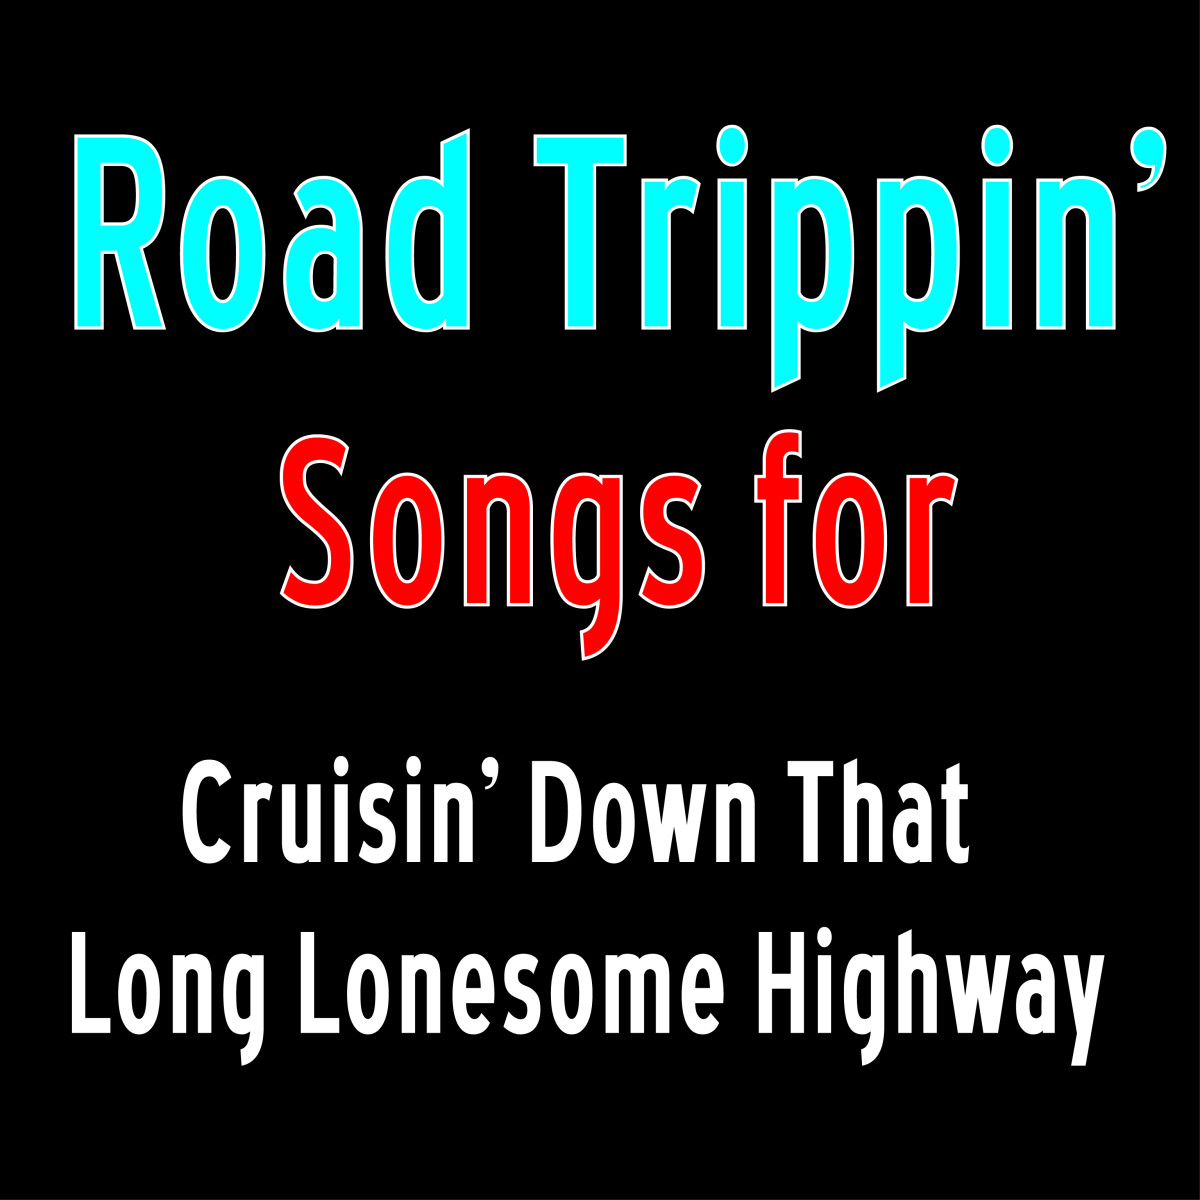 9 Oldies Road Trippin' Songs for Cruisin' Down That Long Lonesome Highway